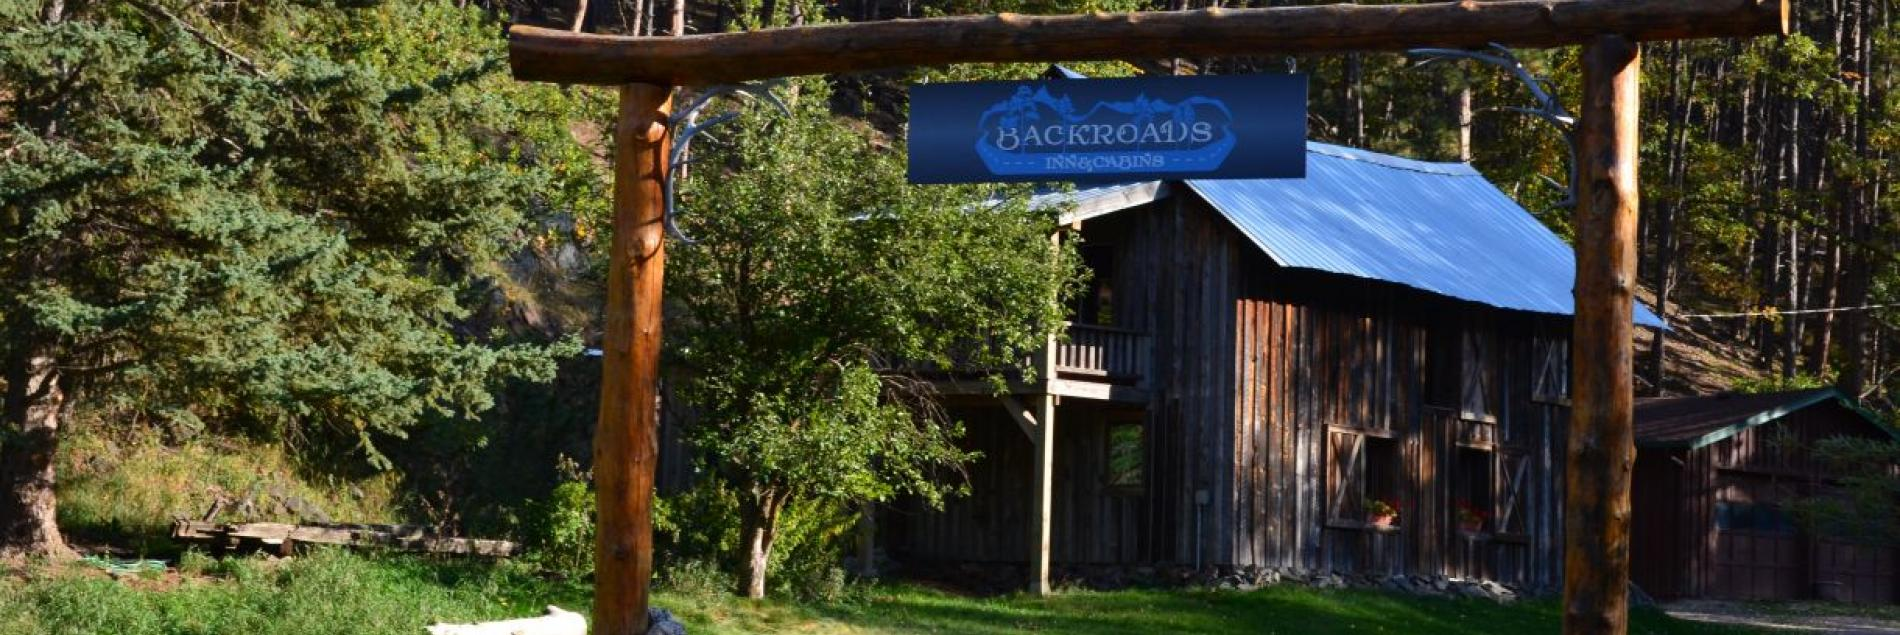 Backroads Inn & Cabins